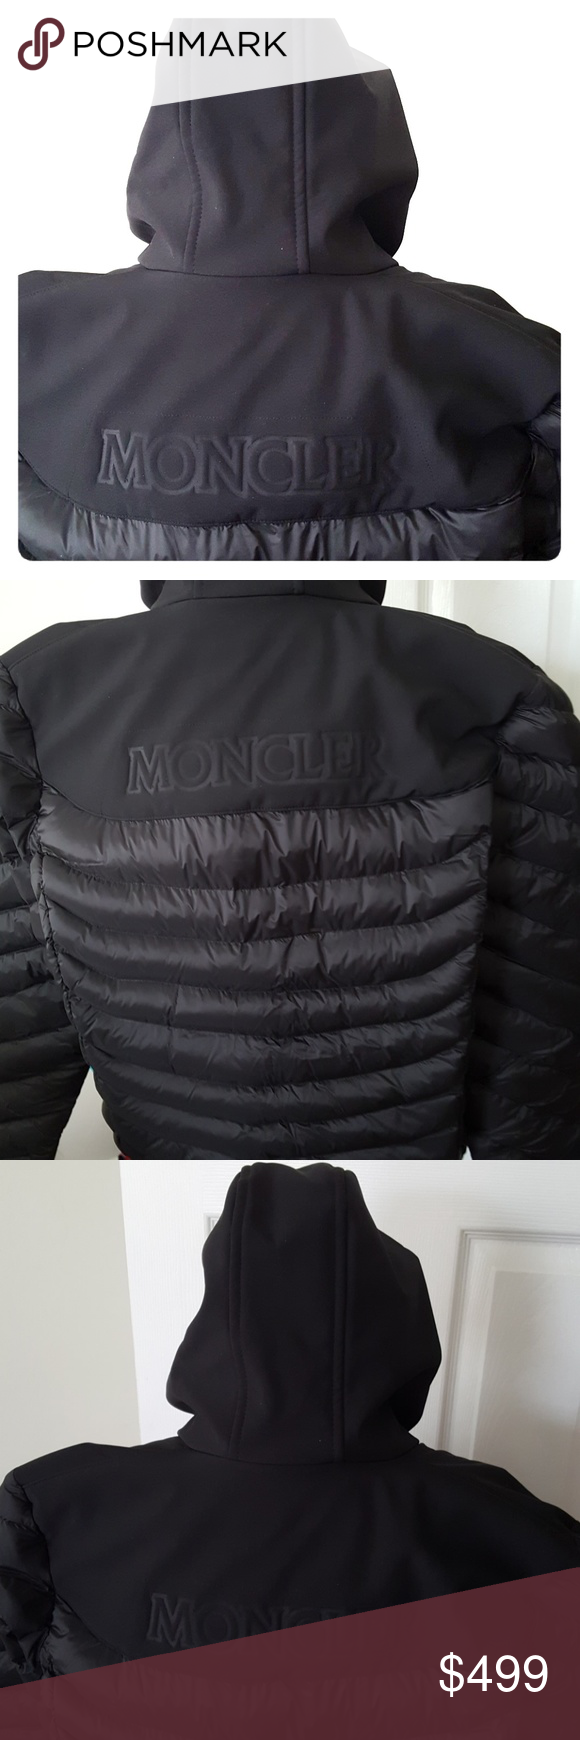 0e09cf28cb93 Moncler size 3 hooded puffer jacket coat